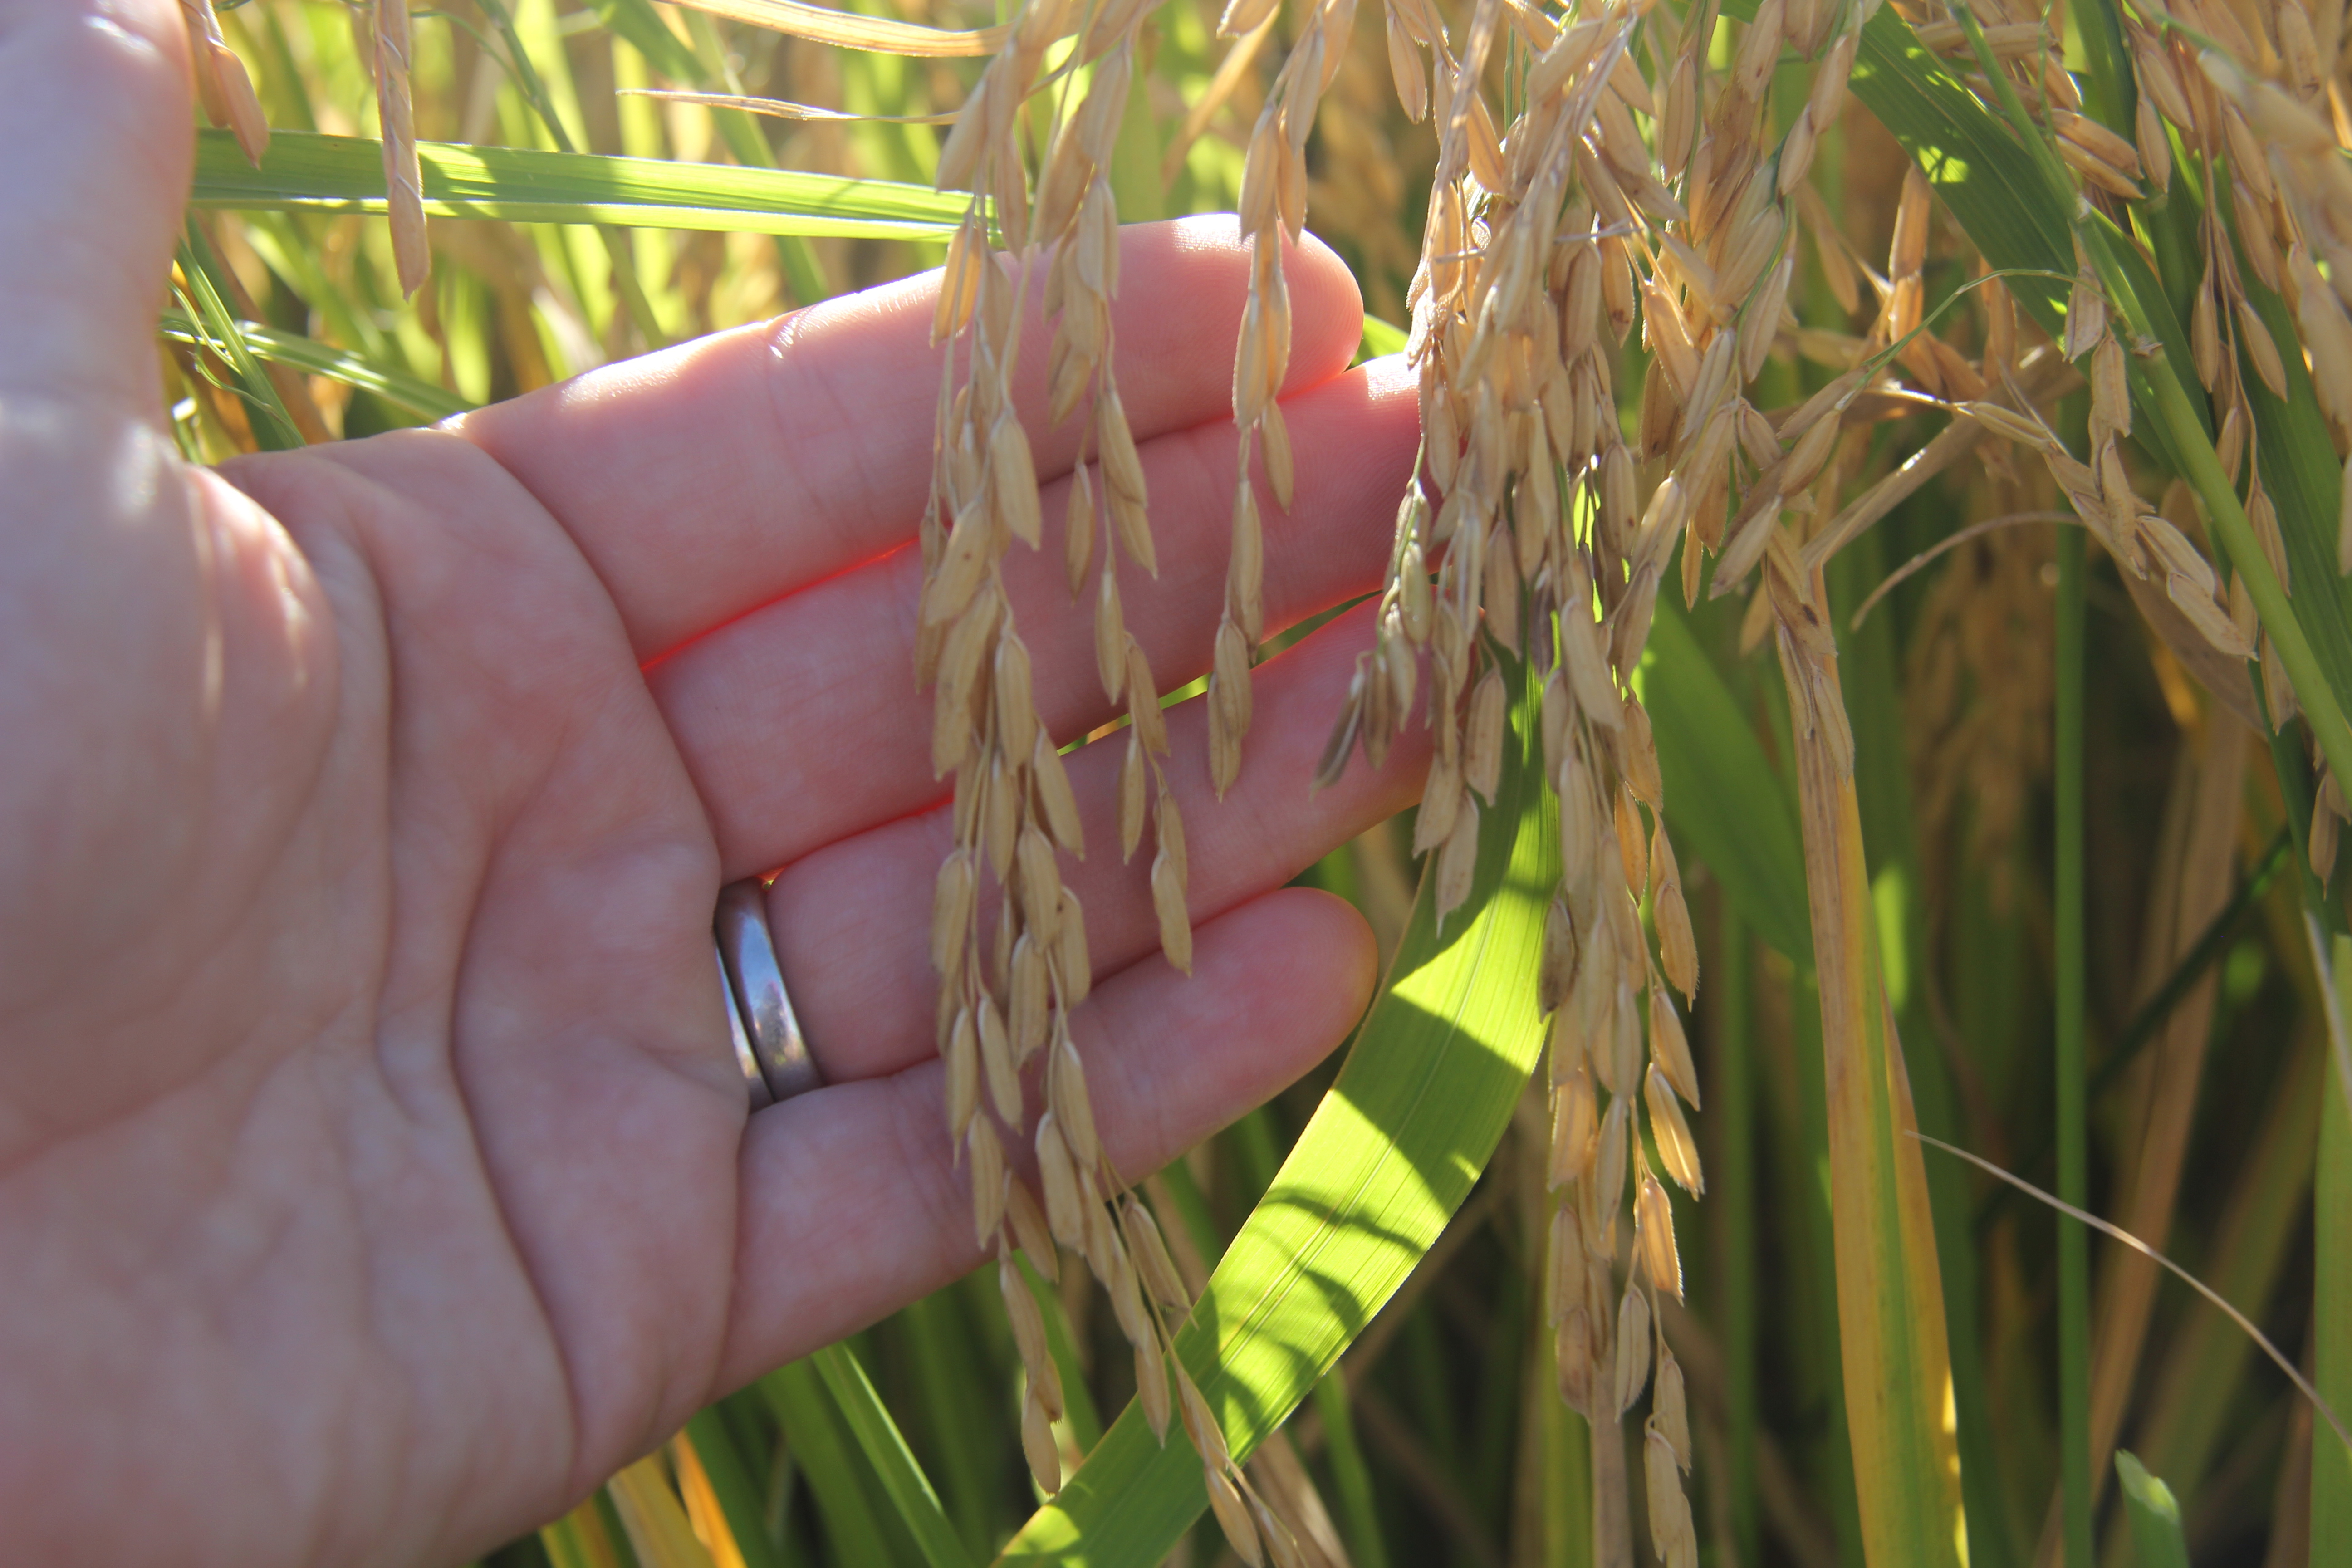 Scott Jackson, director of the University of Georgia Center for Applied Genetic Technologies (CAGT) in the College of Agricultural and Environmental Sciences, helped to map these genomes as part of the international Oryza Map Alignment Project (OMAP).